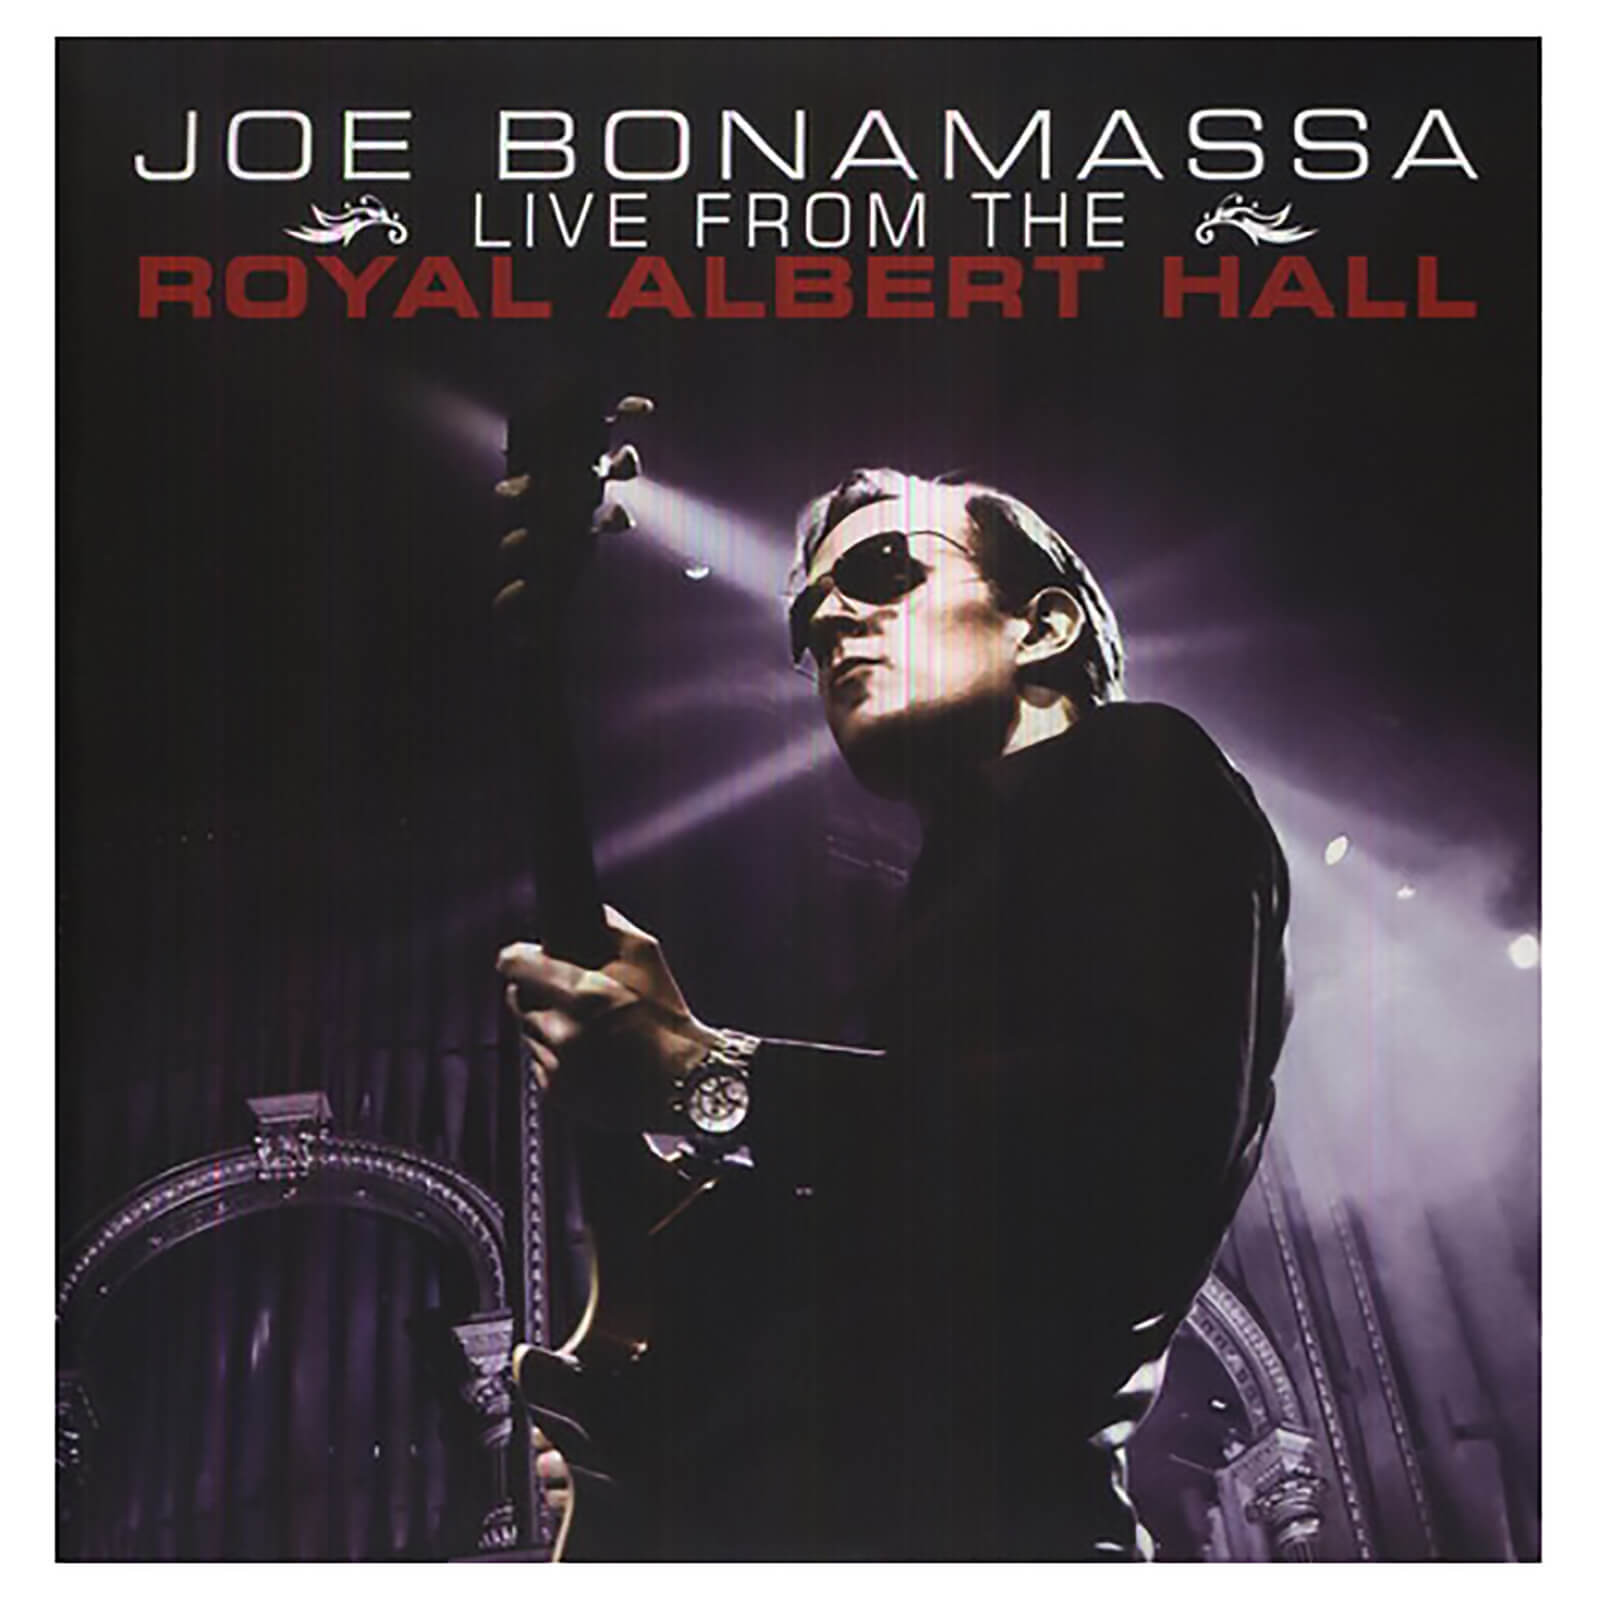 Joe Bonamassa - Live From The Royal Albert Hall - Vinyl